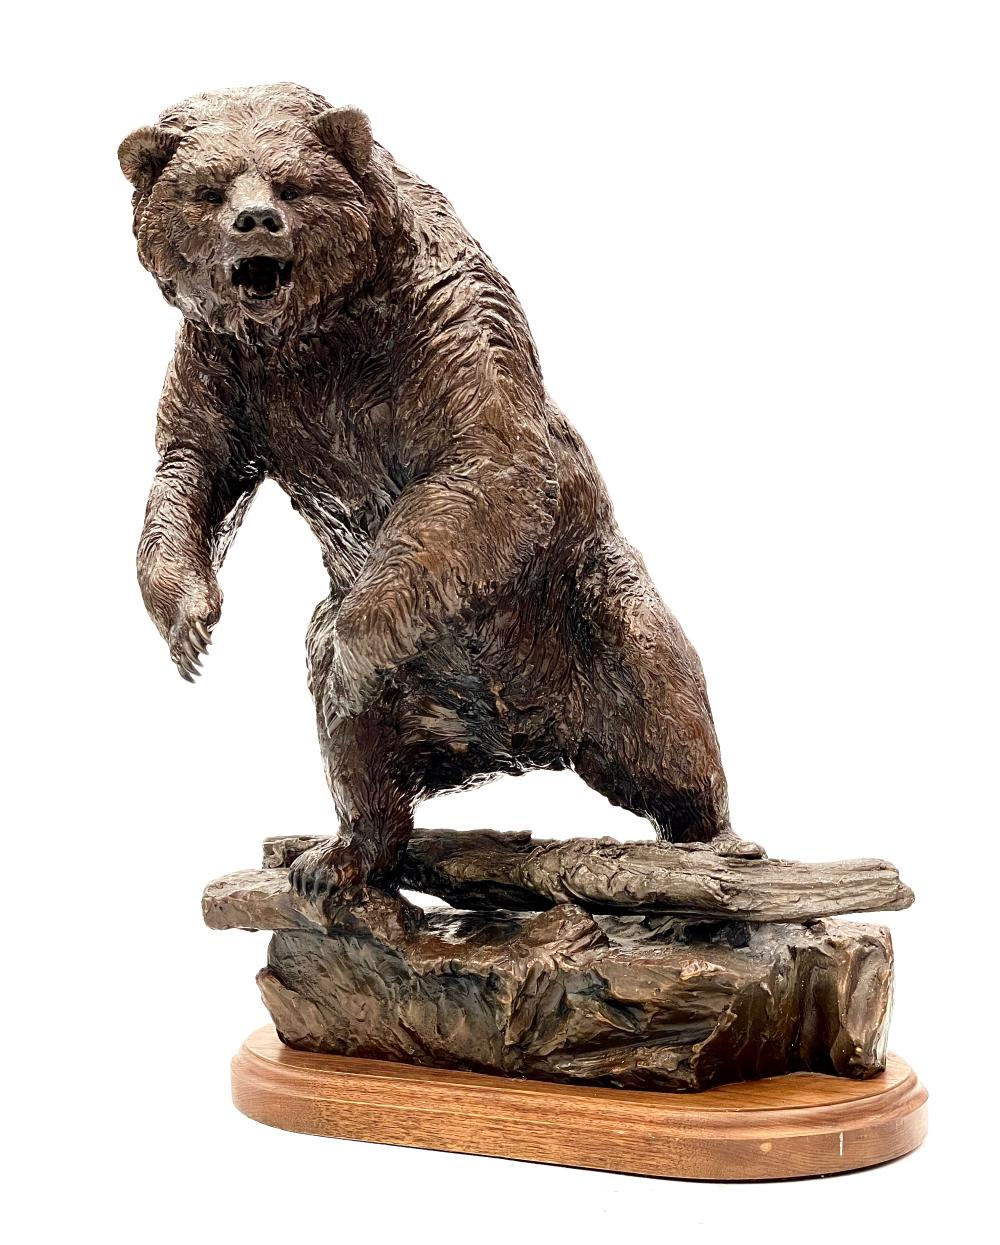 """LORENZO GHIGLIERI """"AUTHORITY OF THE WILD"""" LIMITED EDITION BRONZE GRIZZLY BEAR SCULPTURE"""